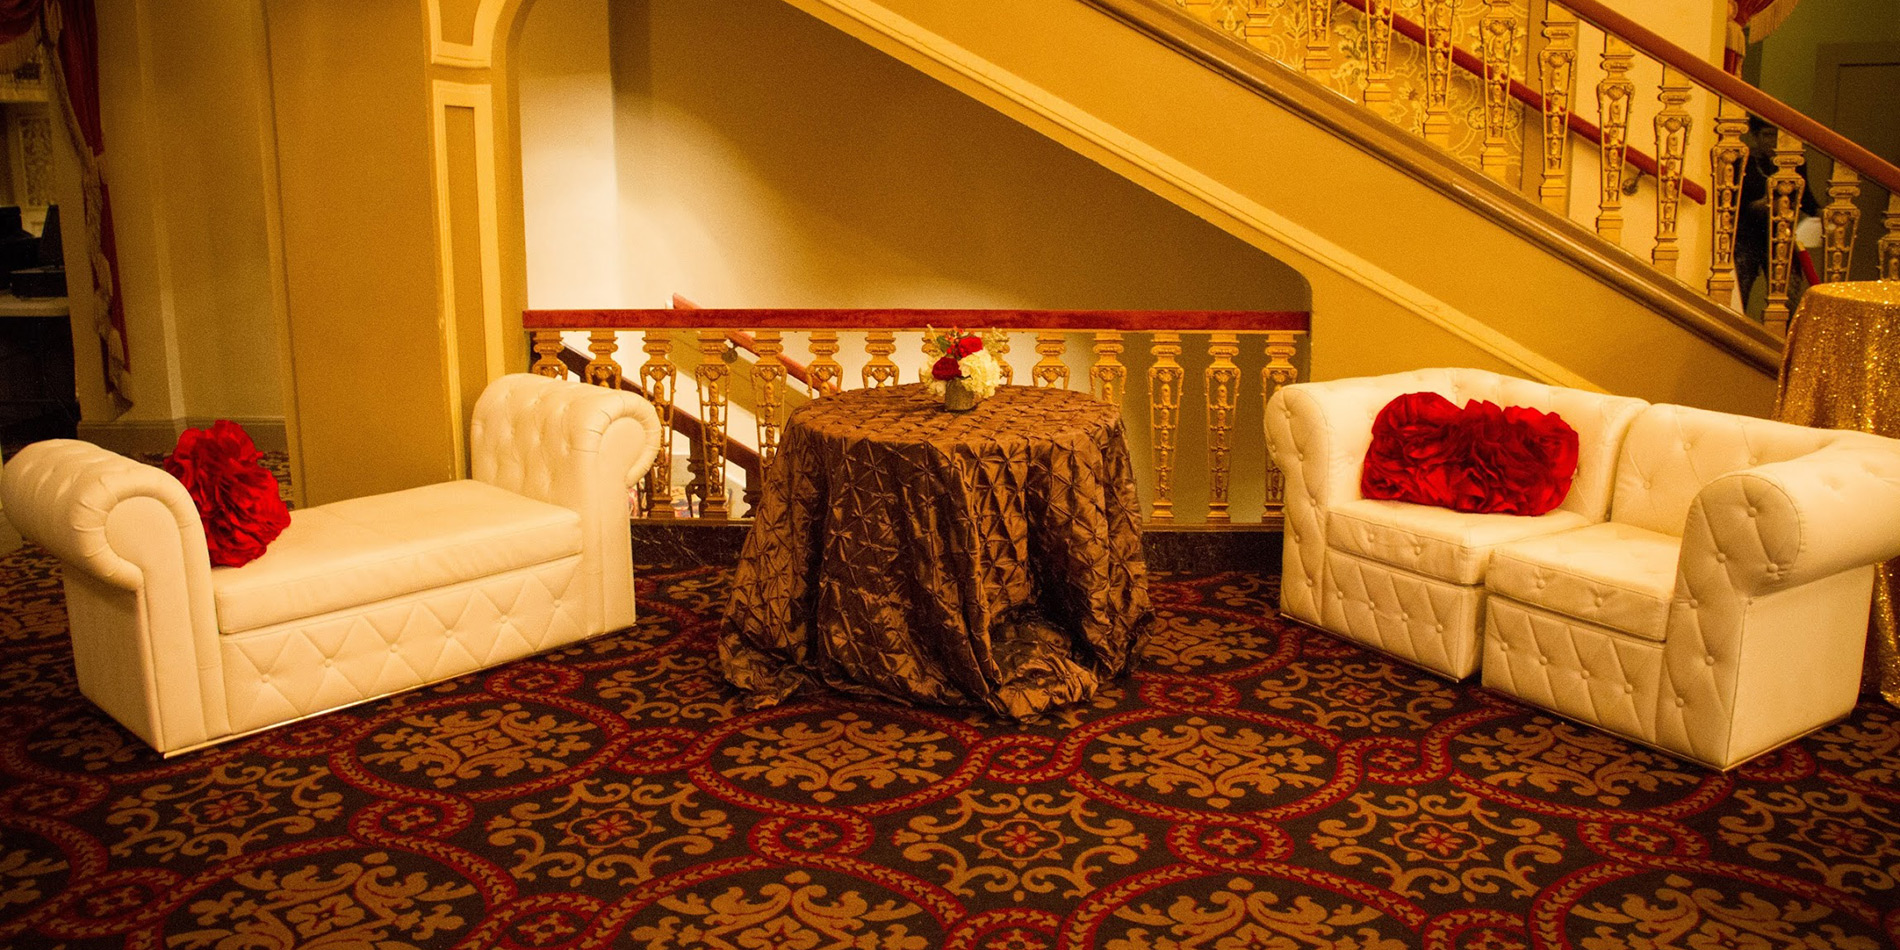 White couches with red pillows in grand lobby